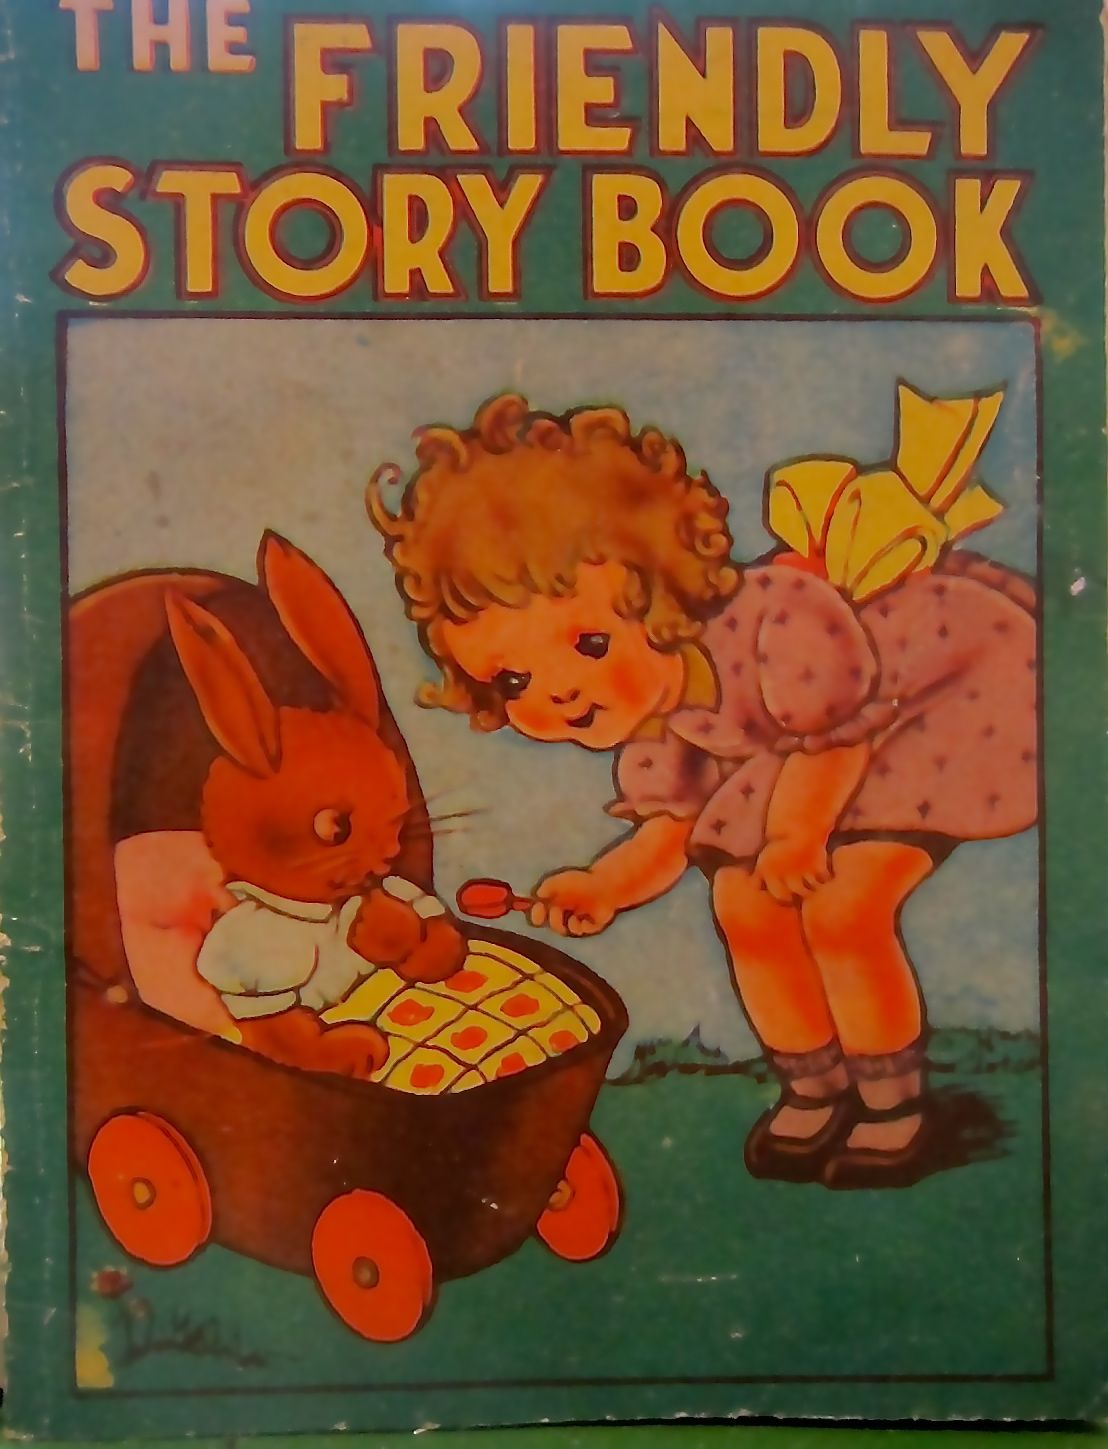 Friendly Story Book Old Children S Books Vintage Children S Books Painted Books